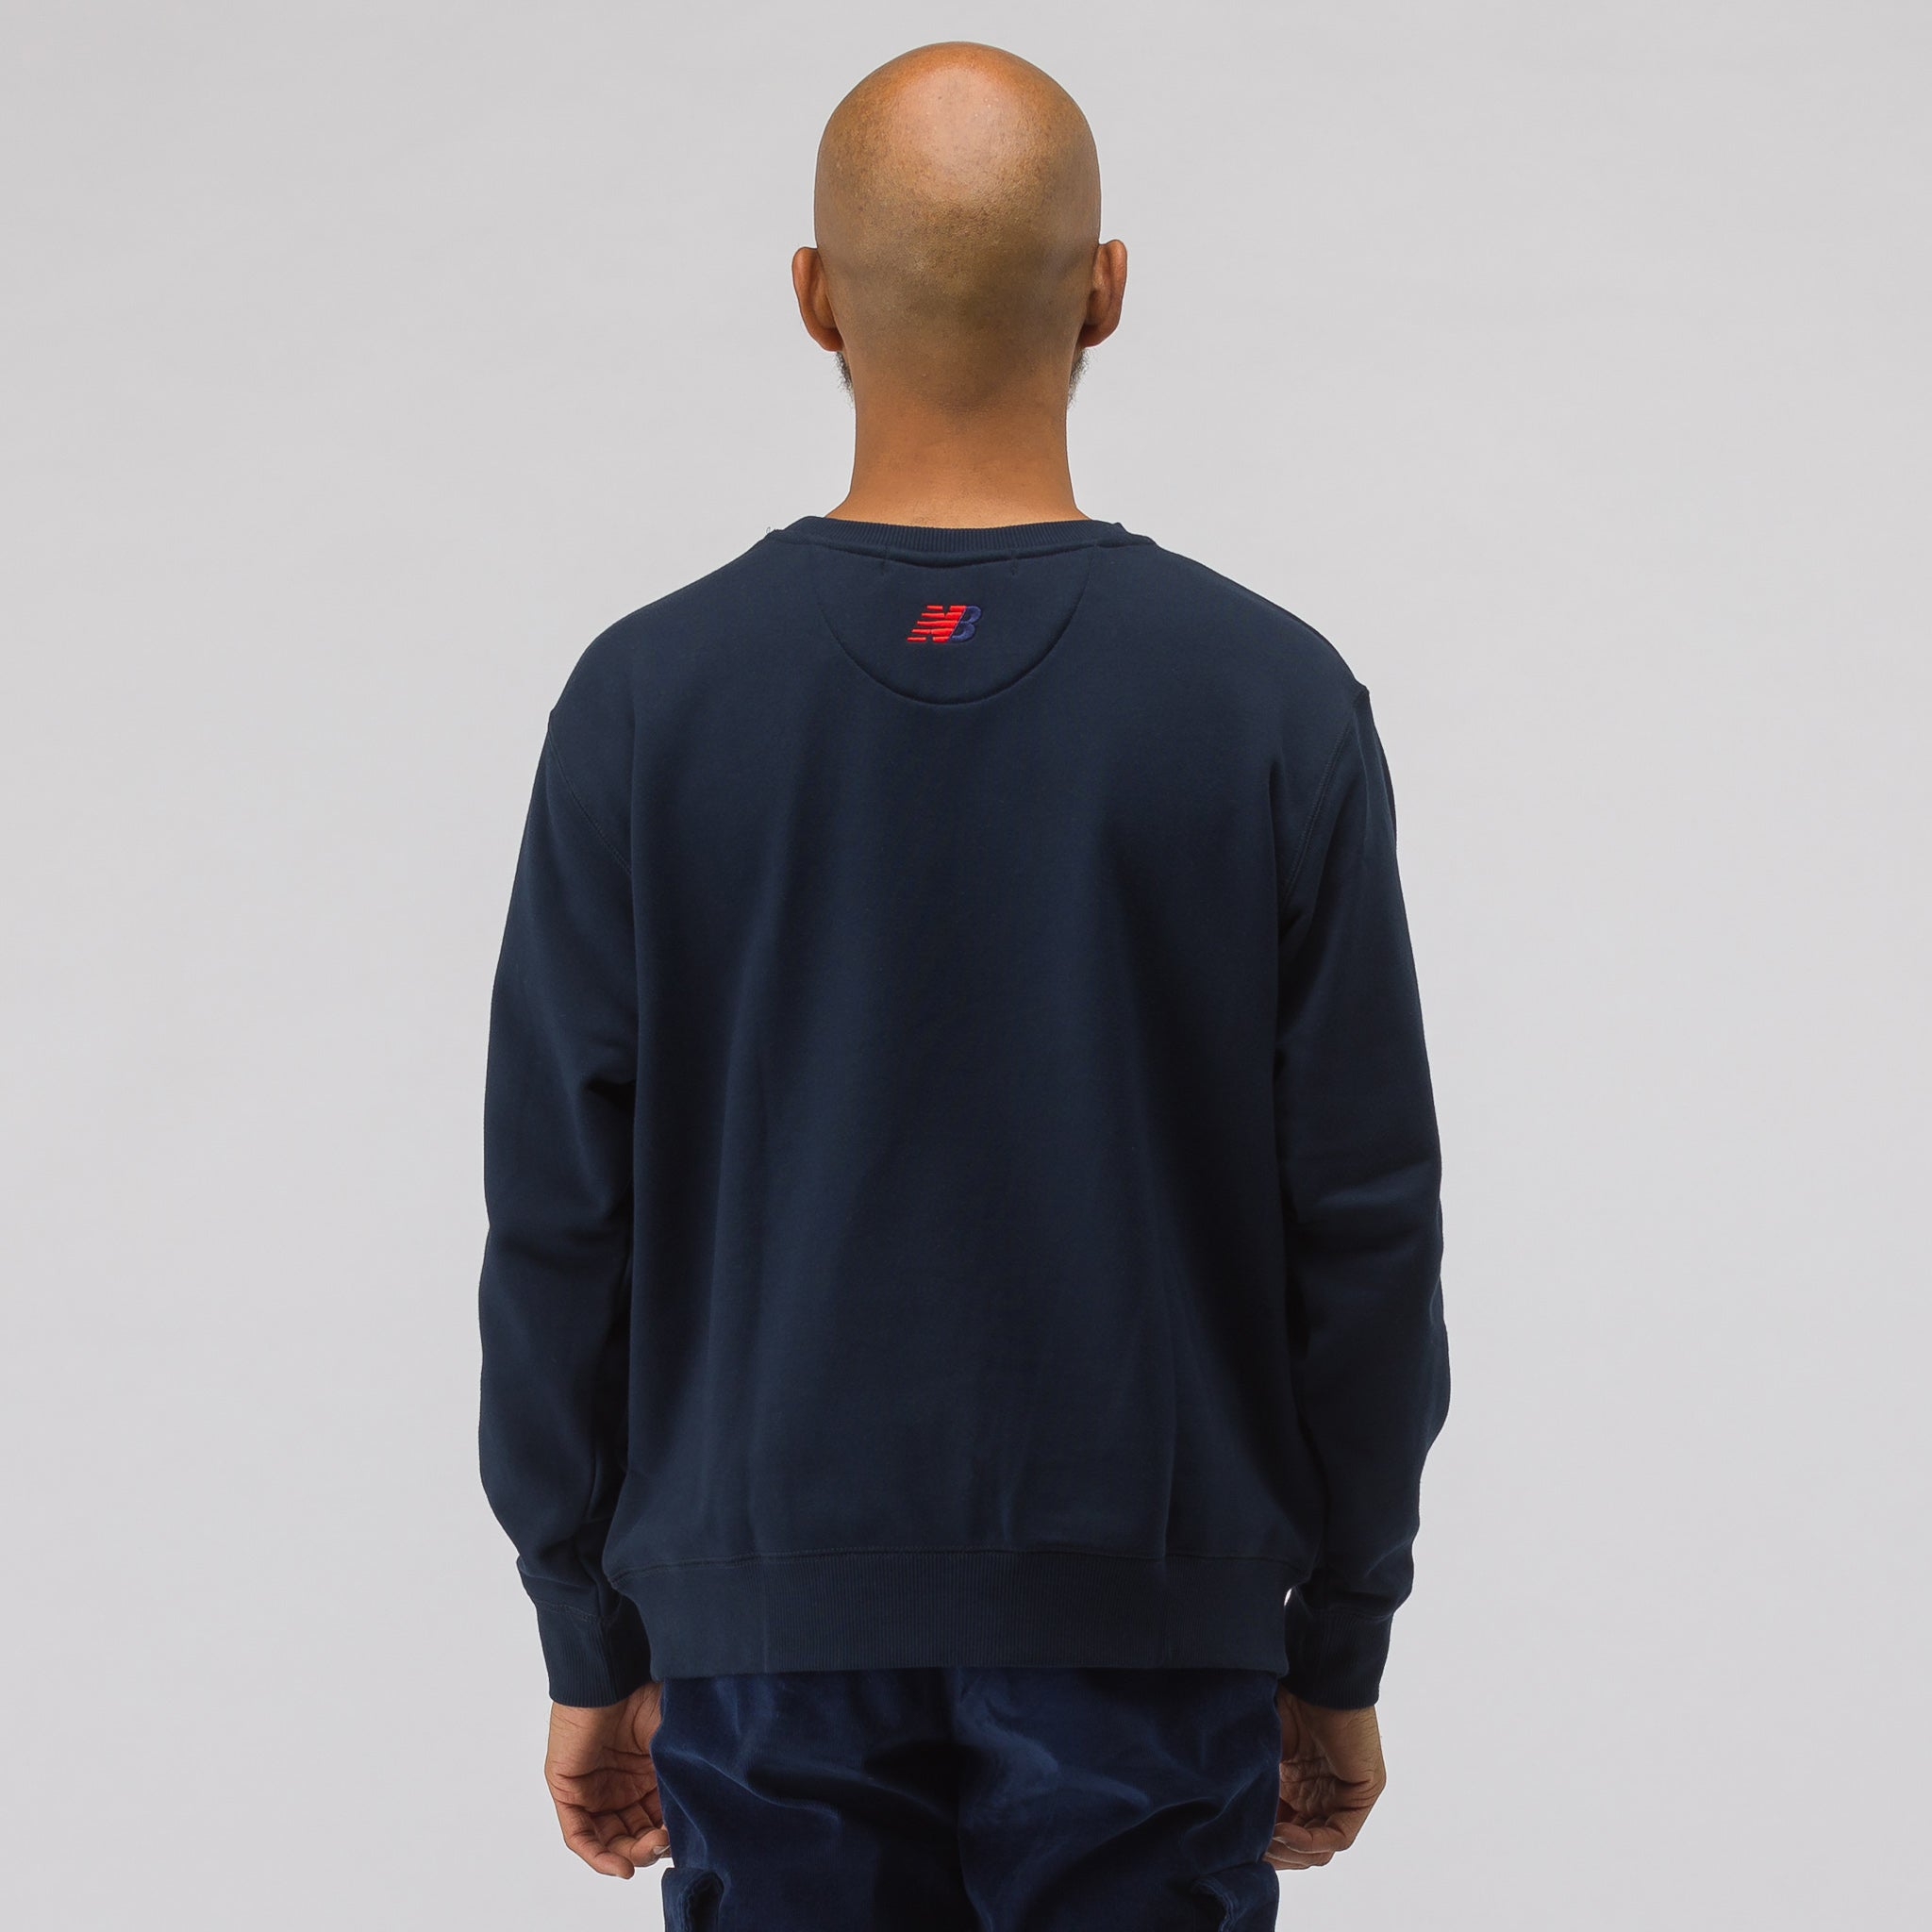 x nanamica COOLMAX® Crewneck Sweatshirt in Navy